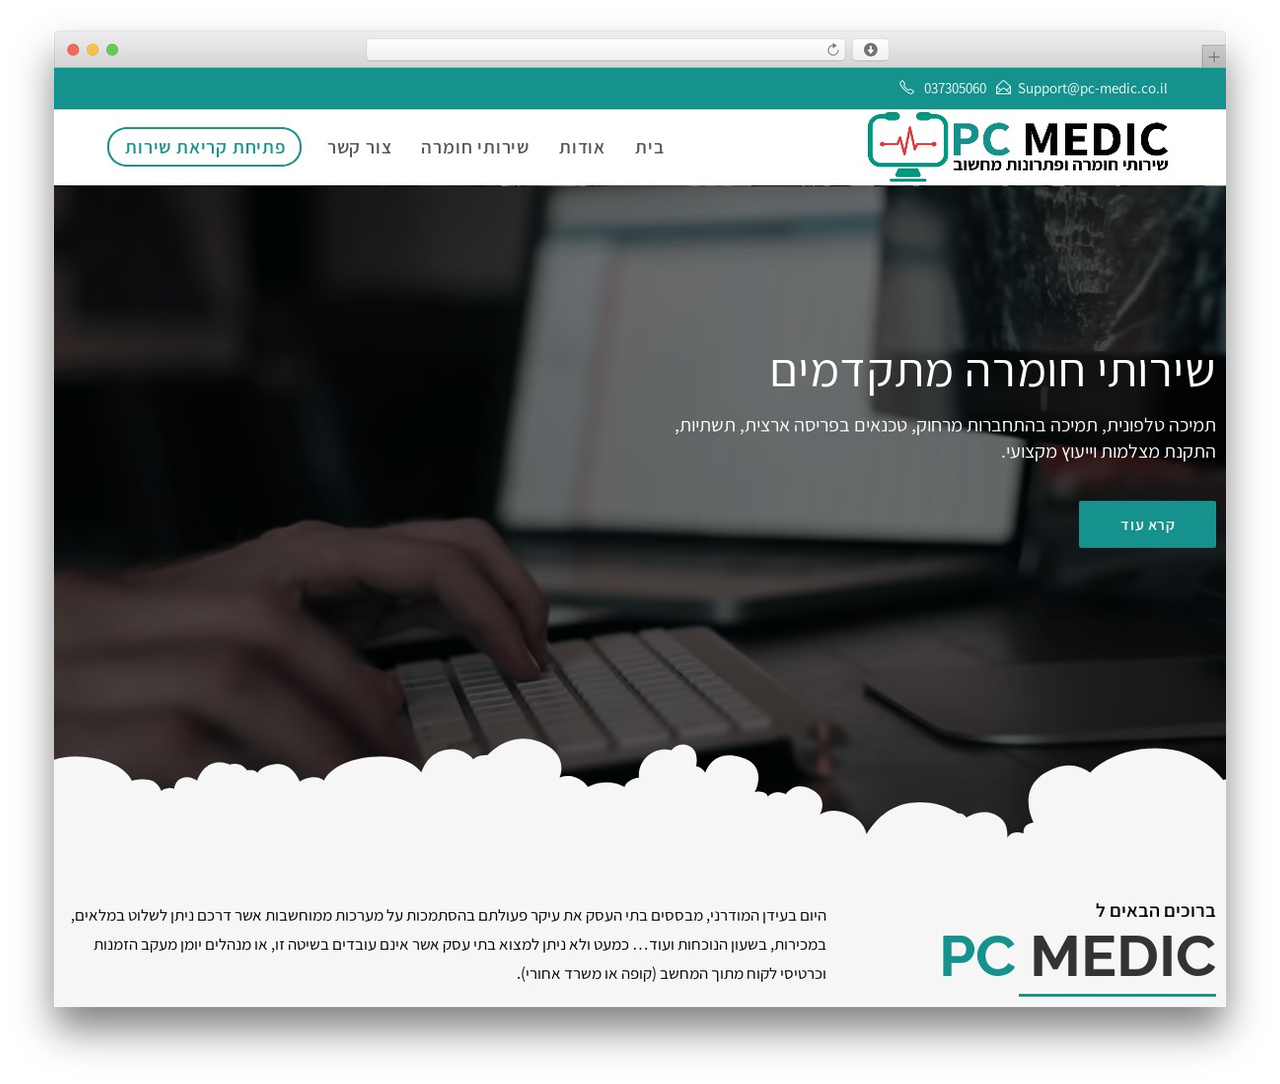 wordpress website template oceanwp by nick pc medic co il